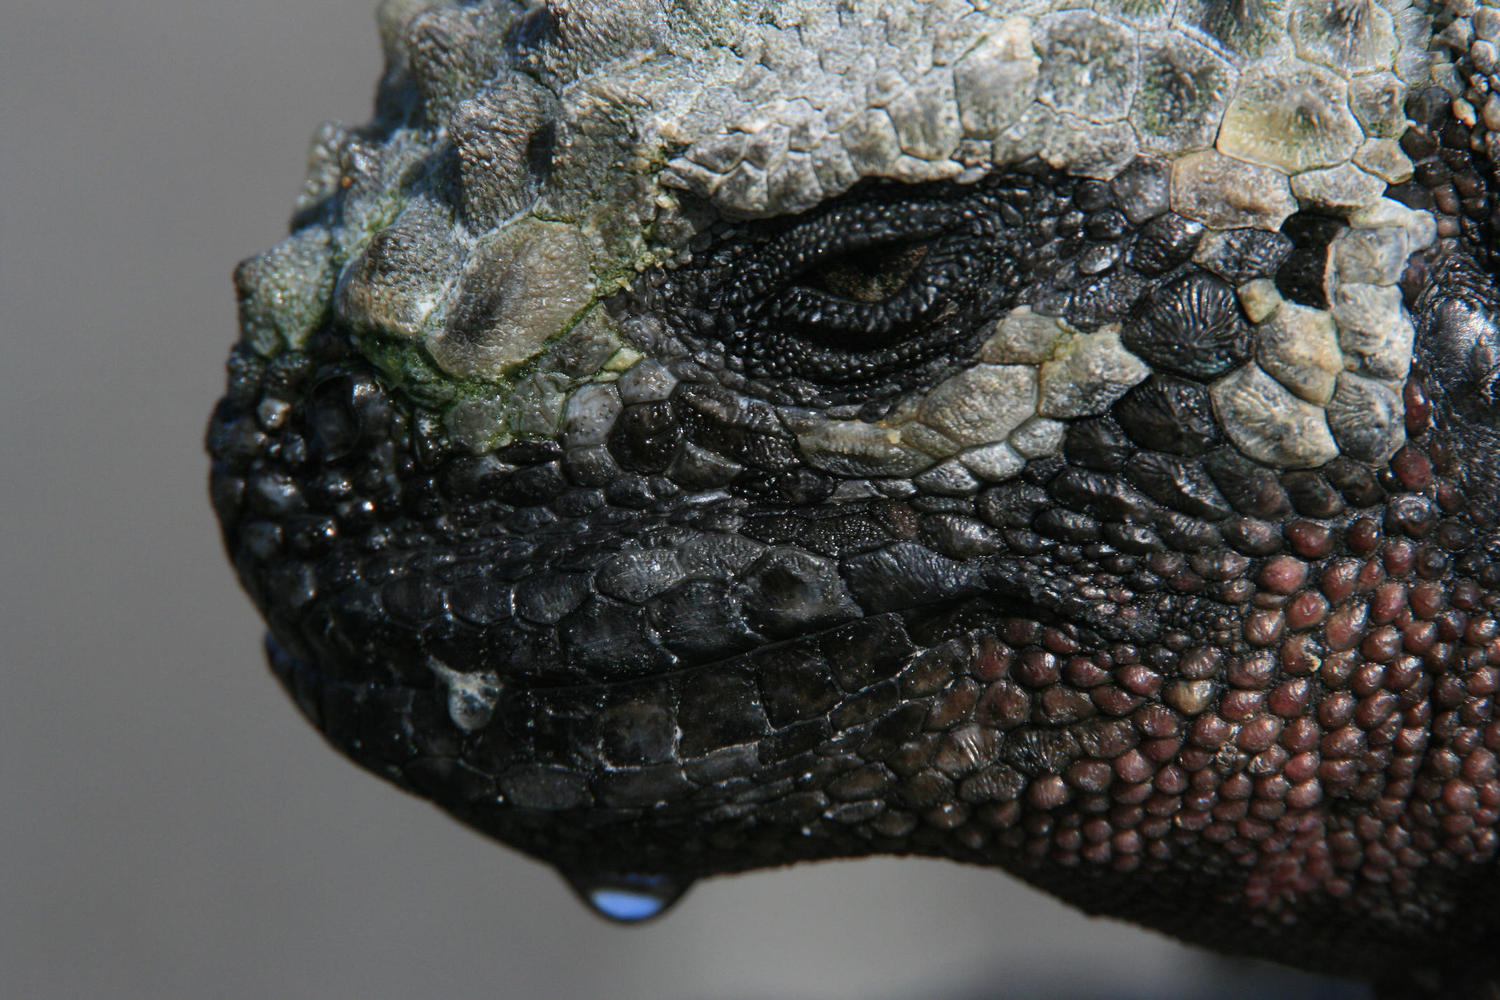 Marine iguana fresh from a foraging dive, Galapagos